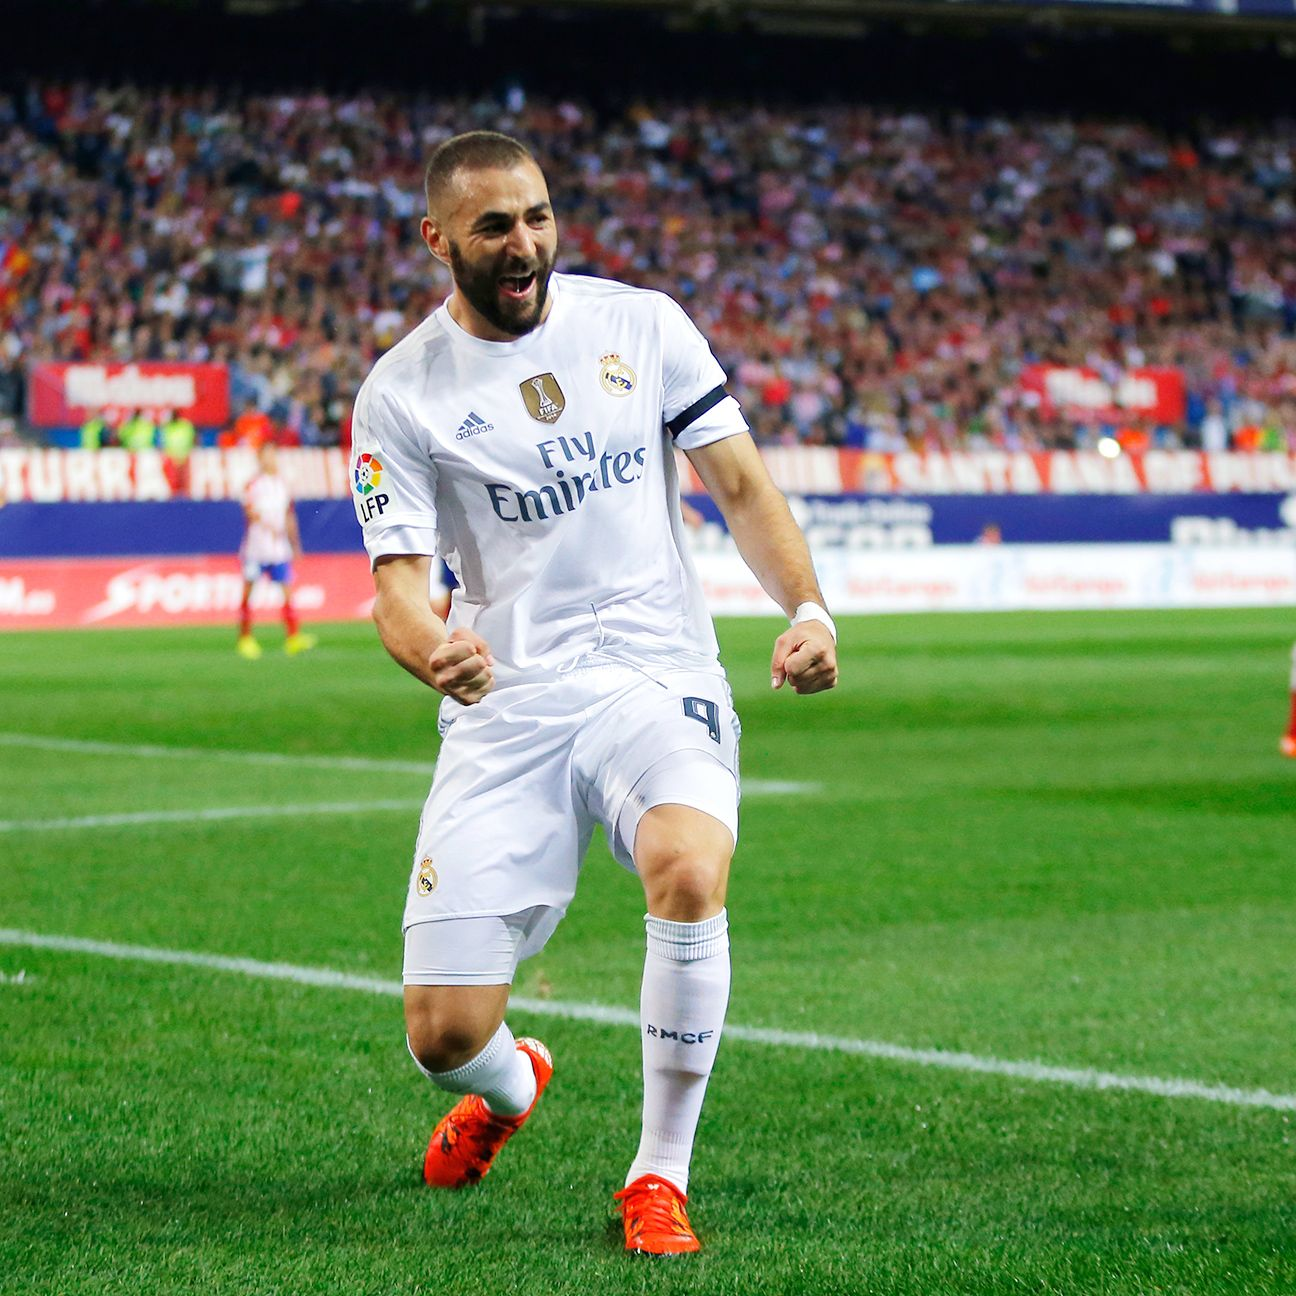 Karim Benzema continued his fine start to the 2015-16 by netting Real's goal in the ninth minute.